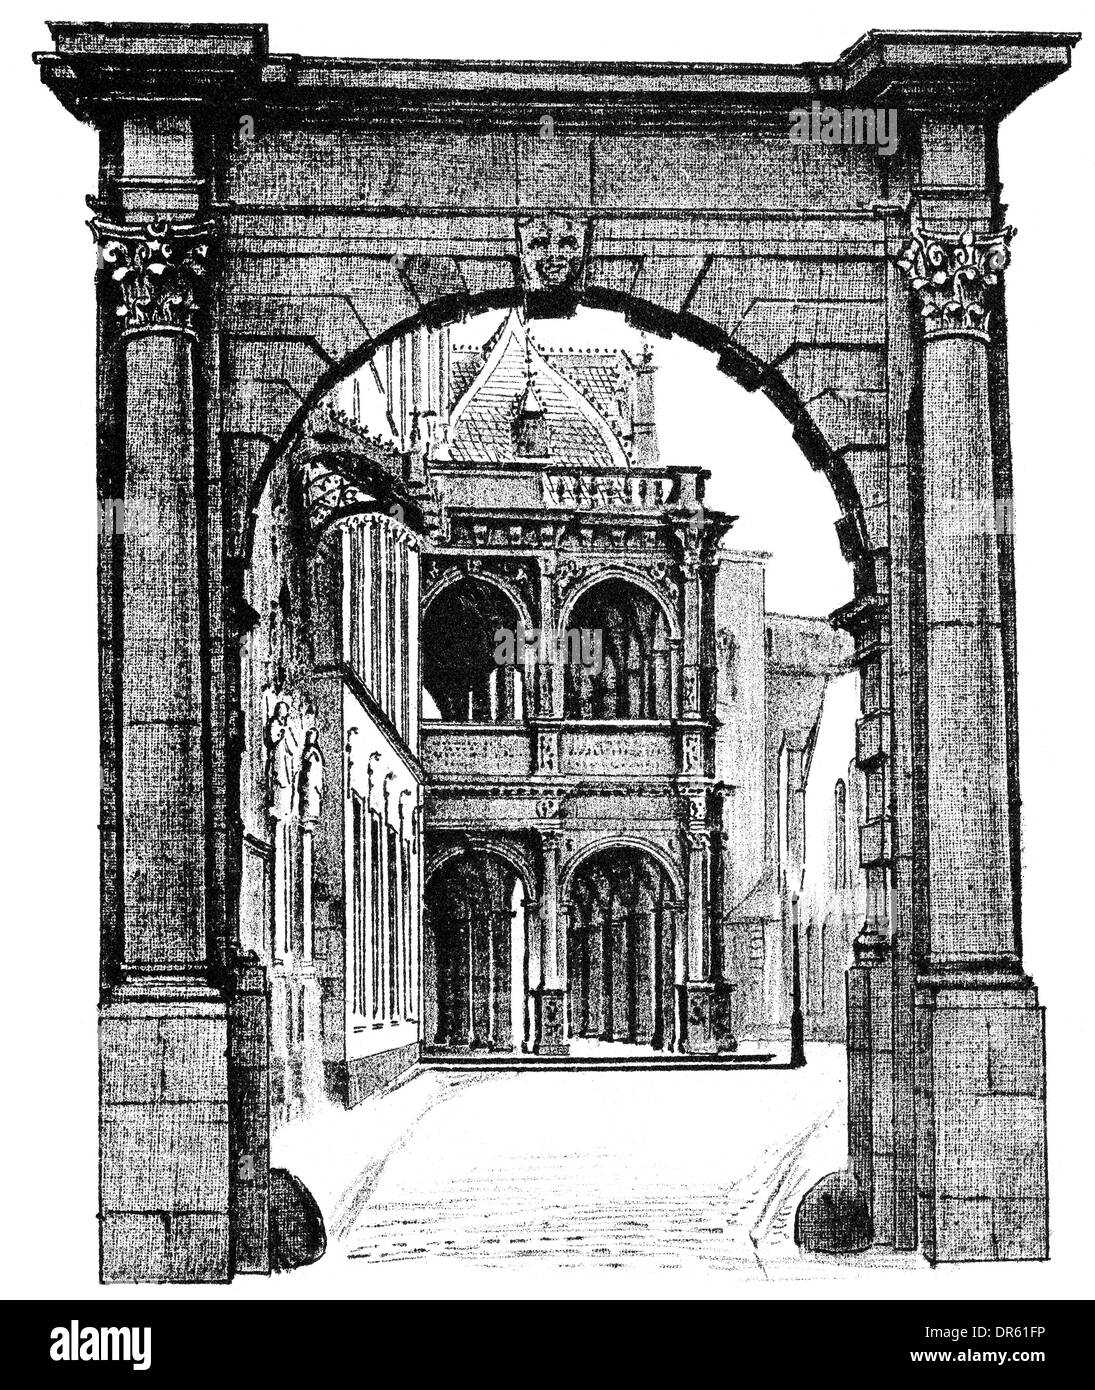 architectural illustration from the 19th Century, 1881, German Renaissance style, 16th century, old town hall, Cologne, Germany, - Stock Image